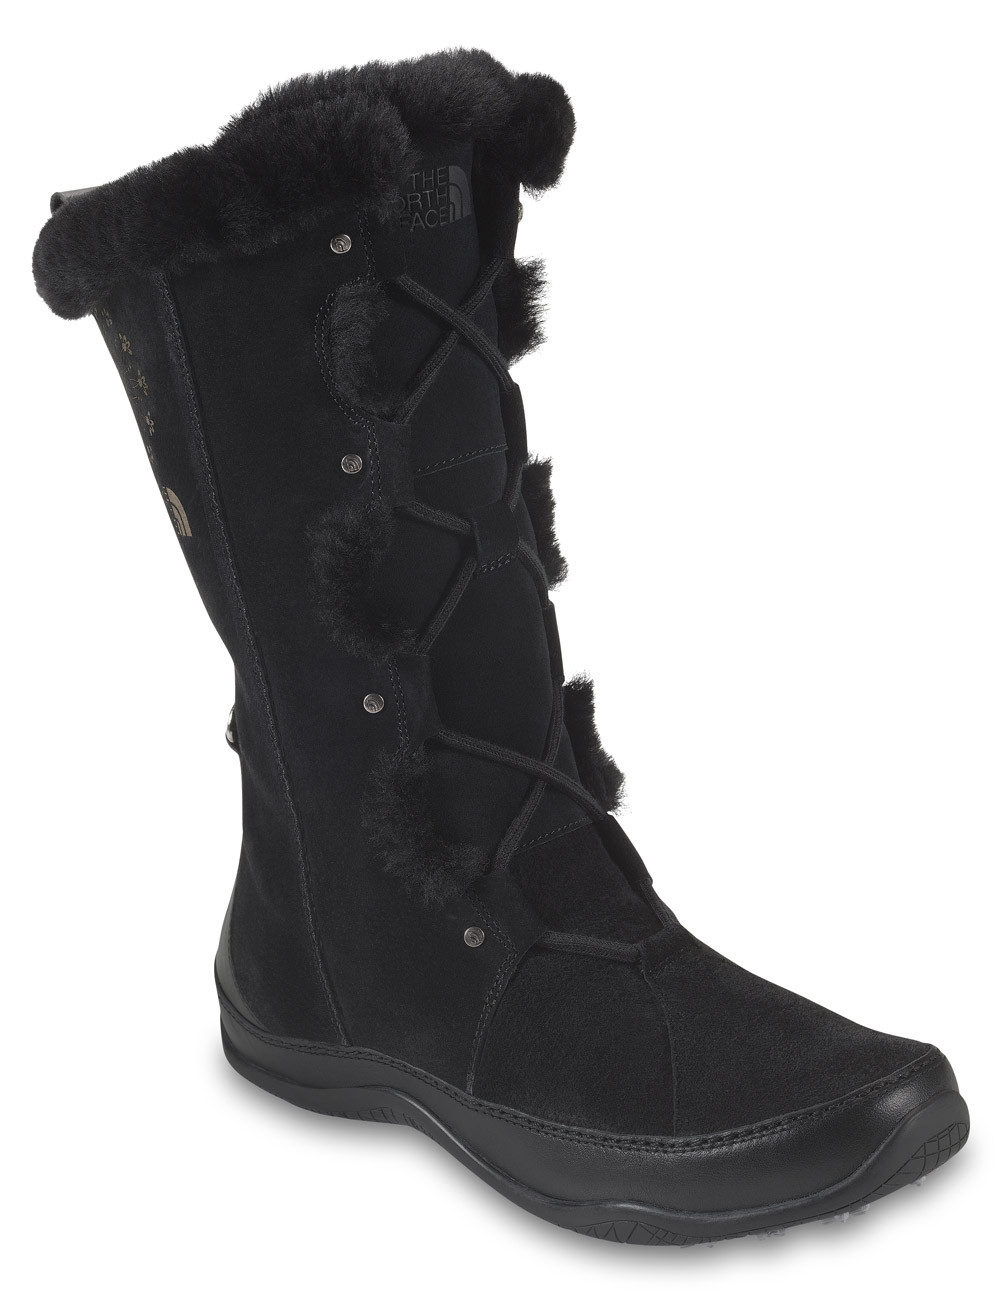 The north face abby iii black order now at snowboots shop co uk